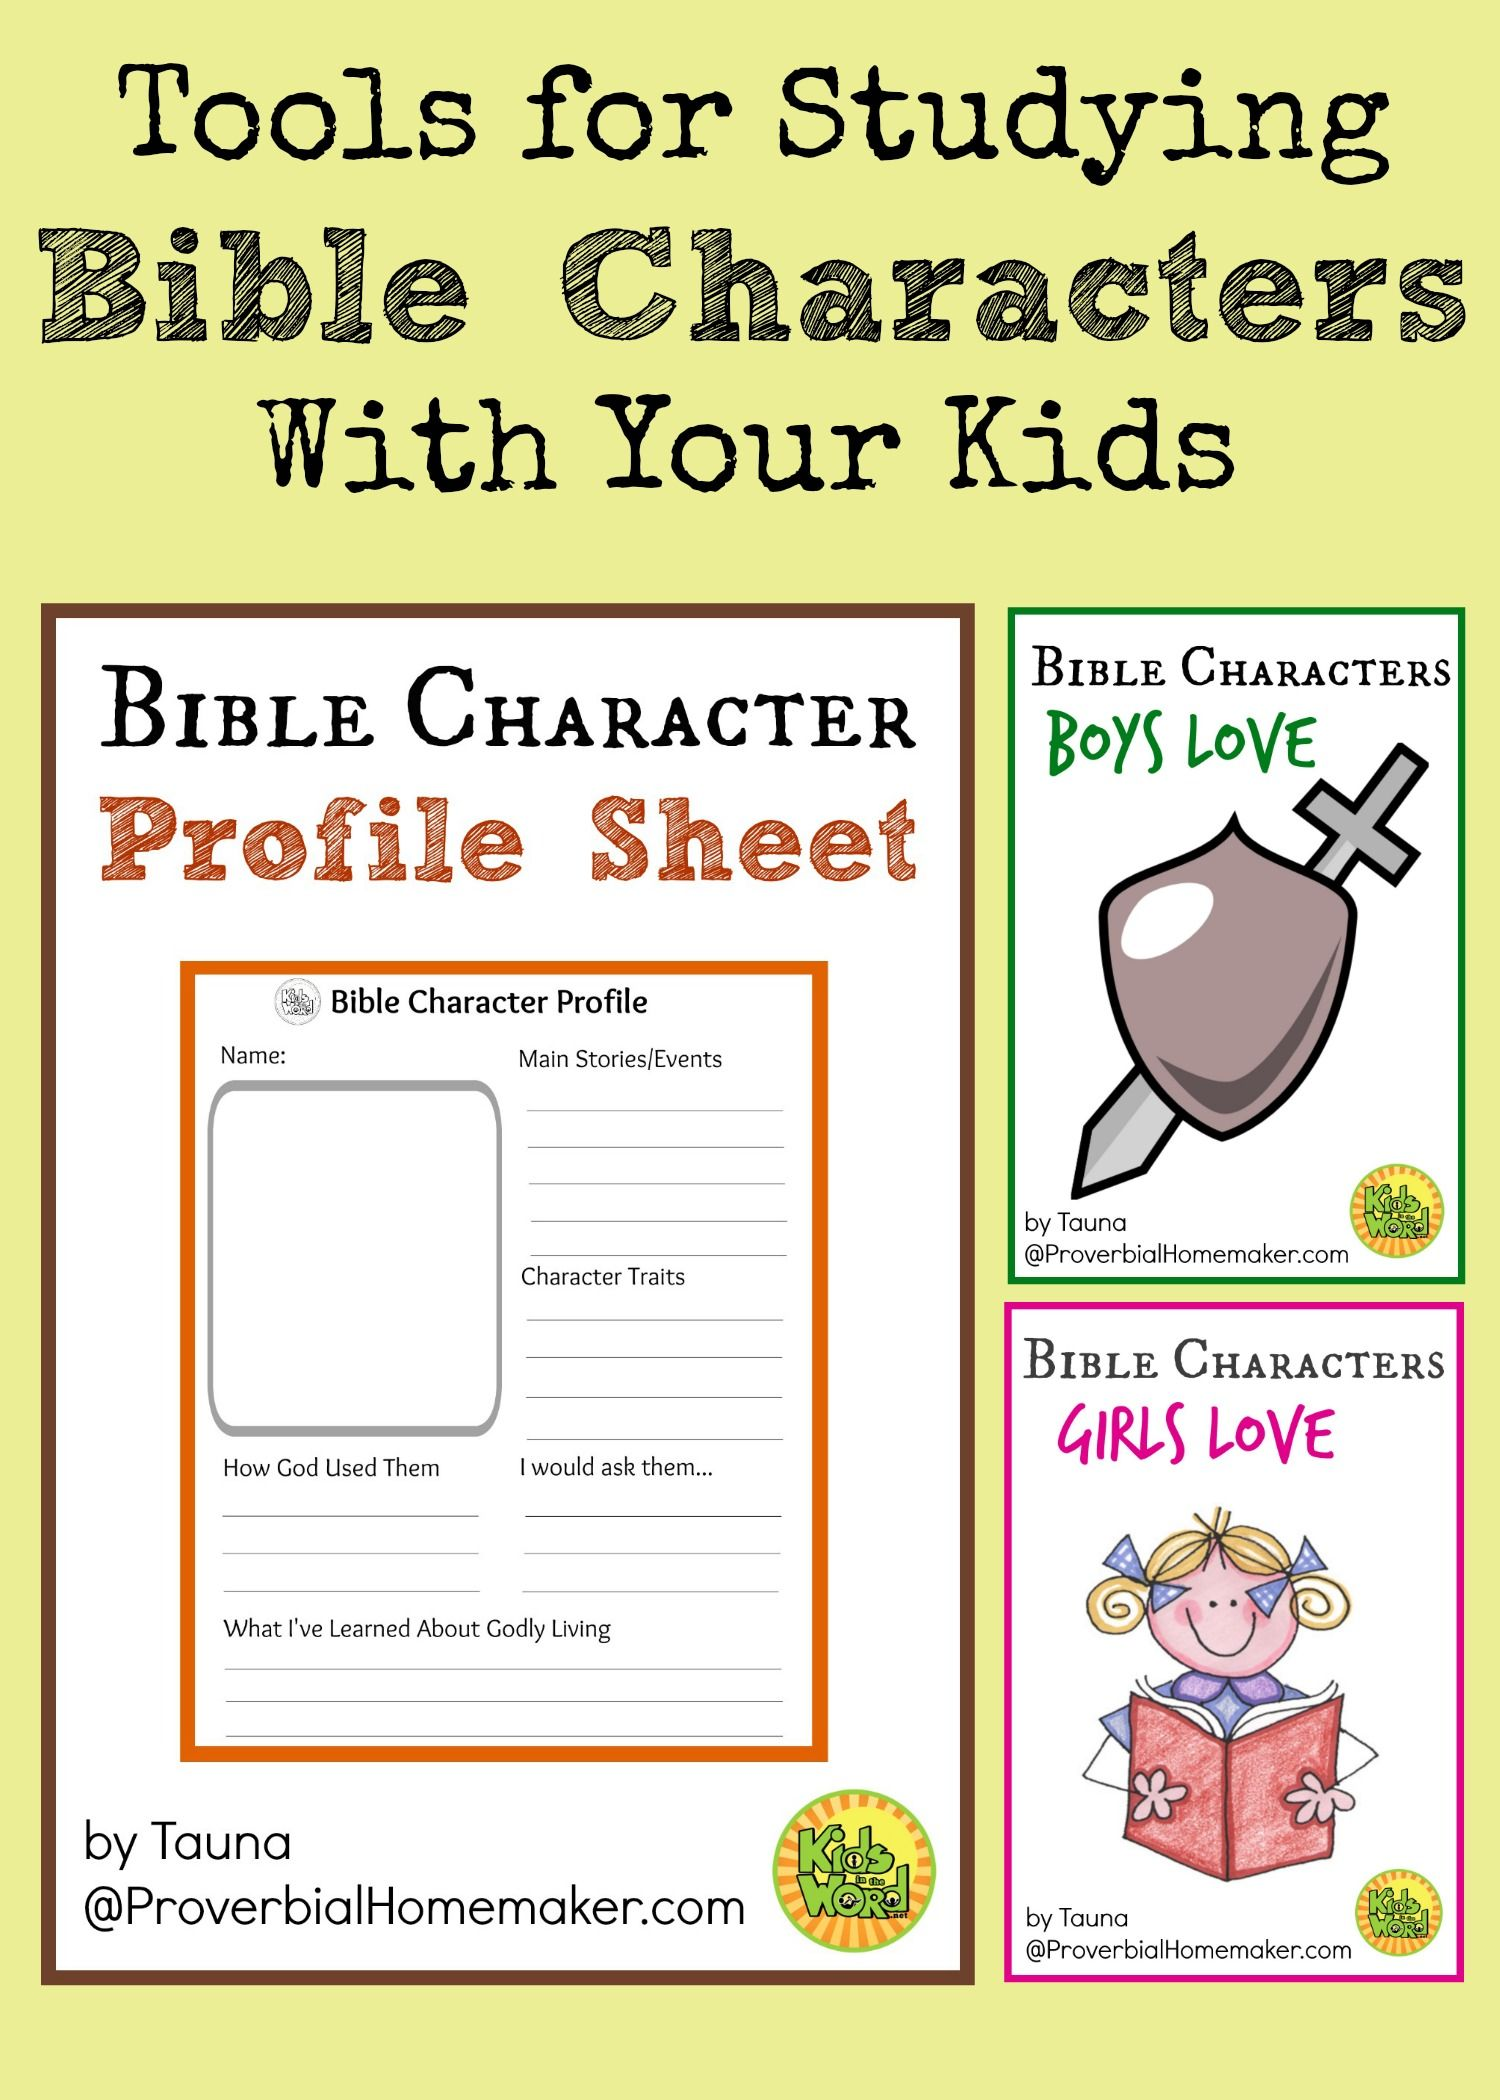 Study Bible Characters With Your Kids